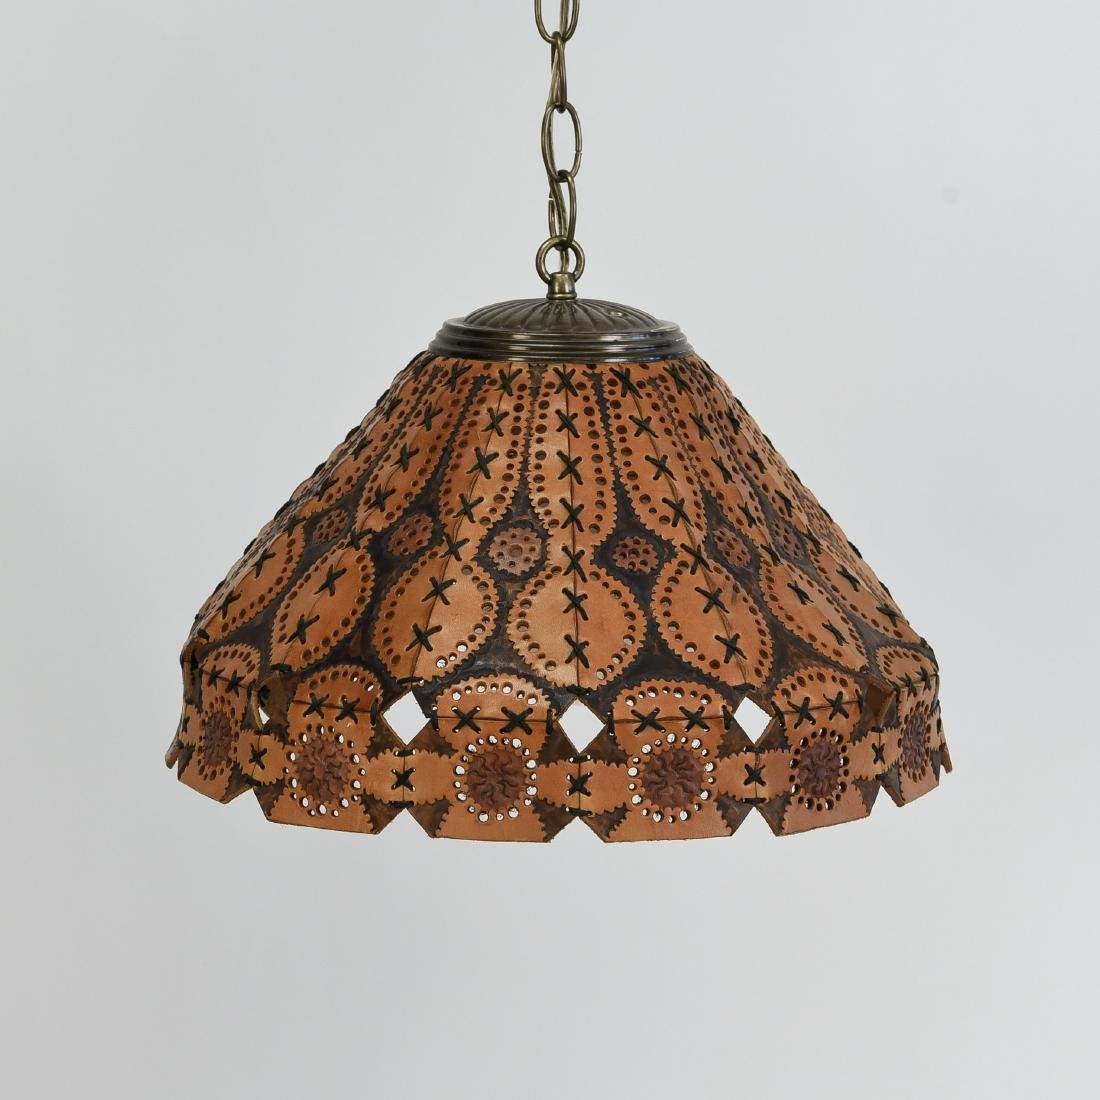 TOOLED LEATHER SHADE HANGING LAMP